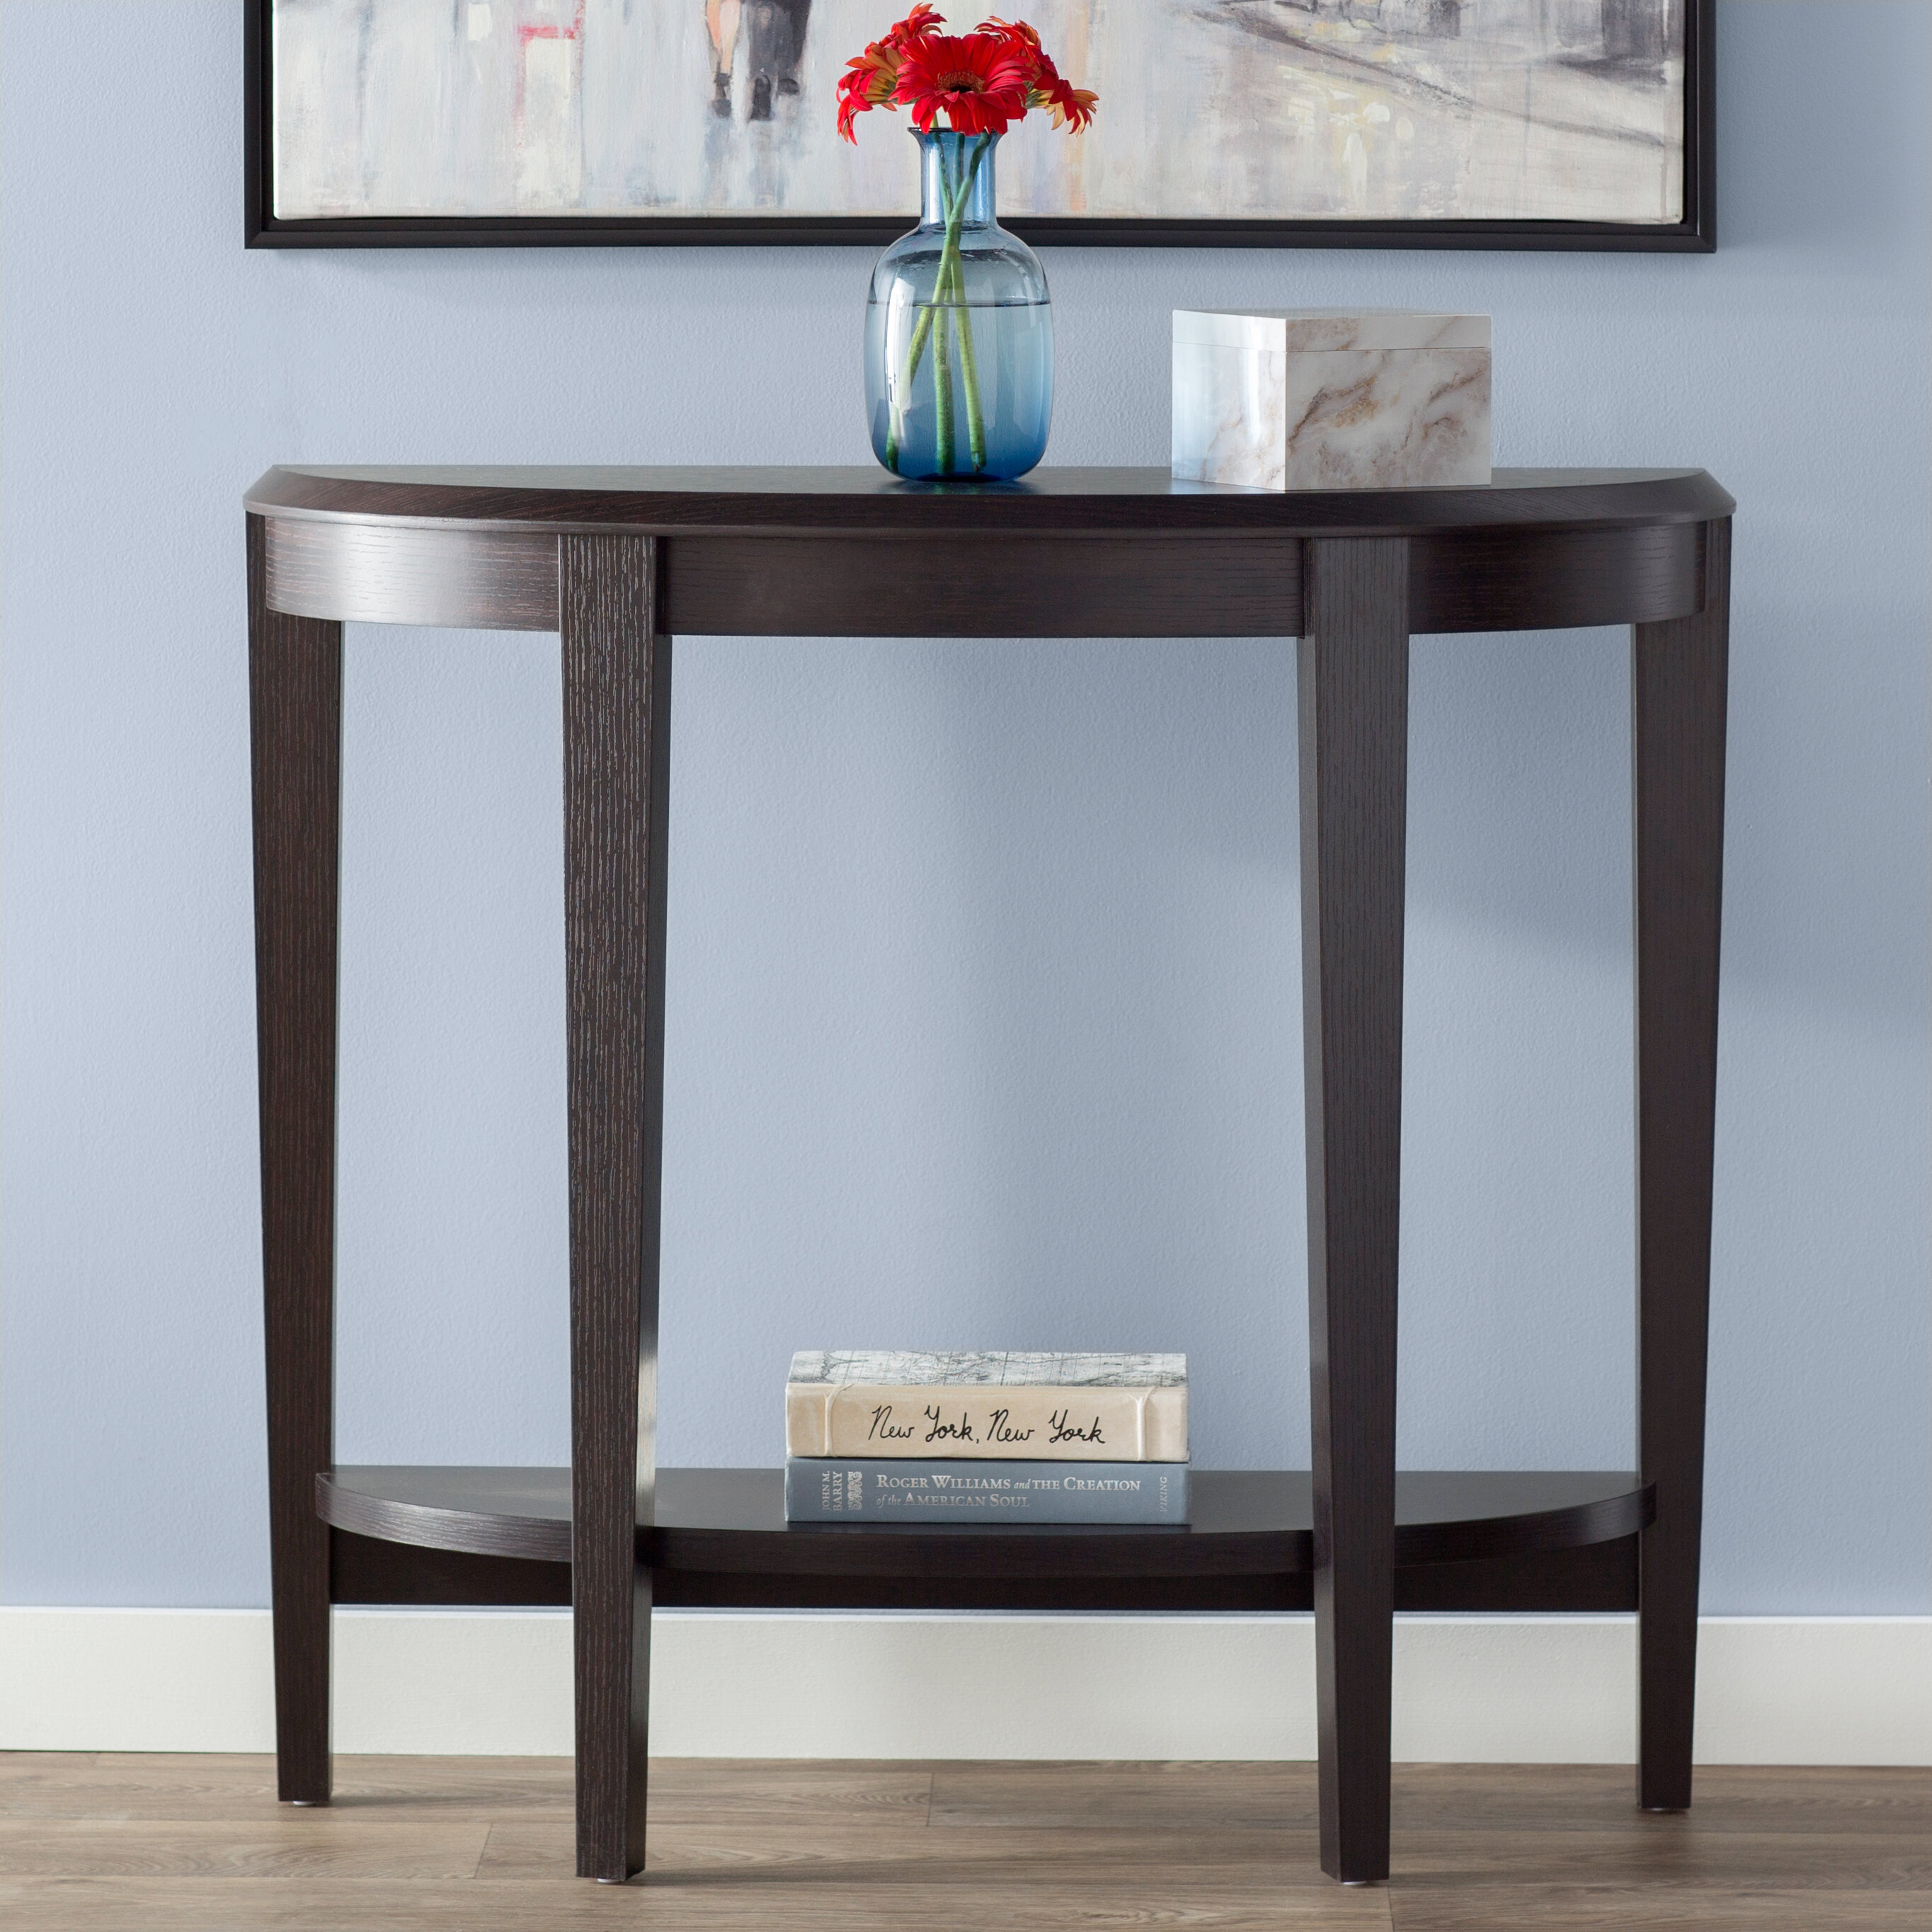 Incredible Half Moon Small Under 42 In Console Tables Youll Love In Download Free Architecture Designs Scobabritishbridgeorg